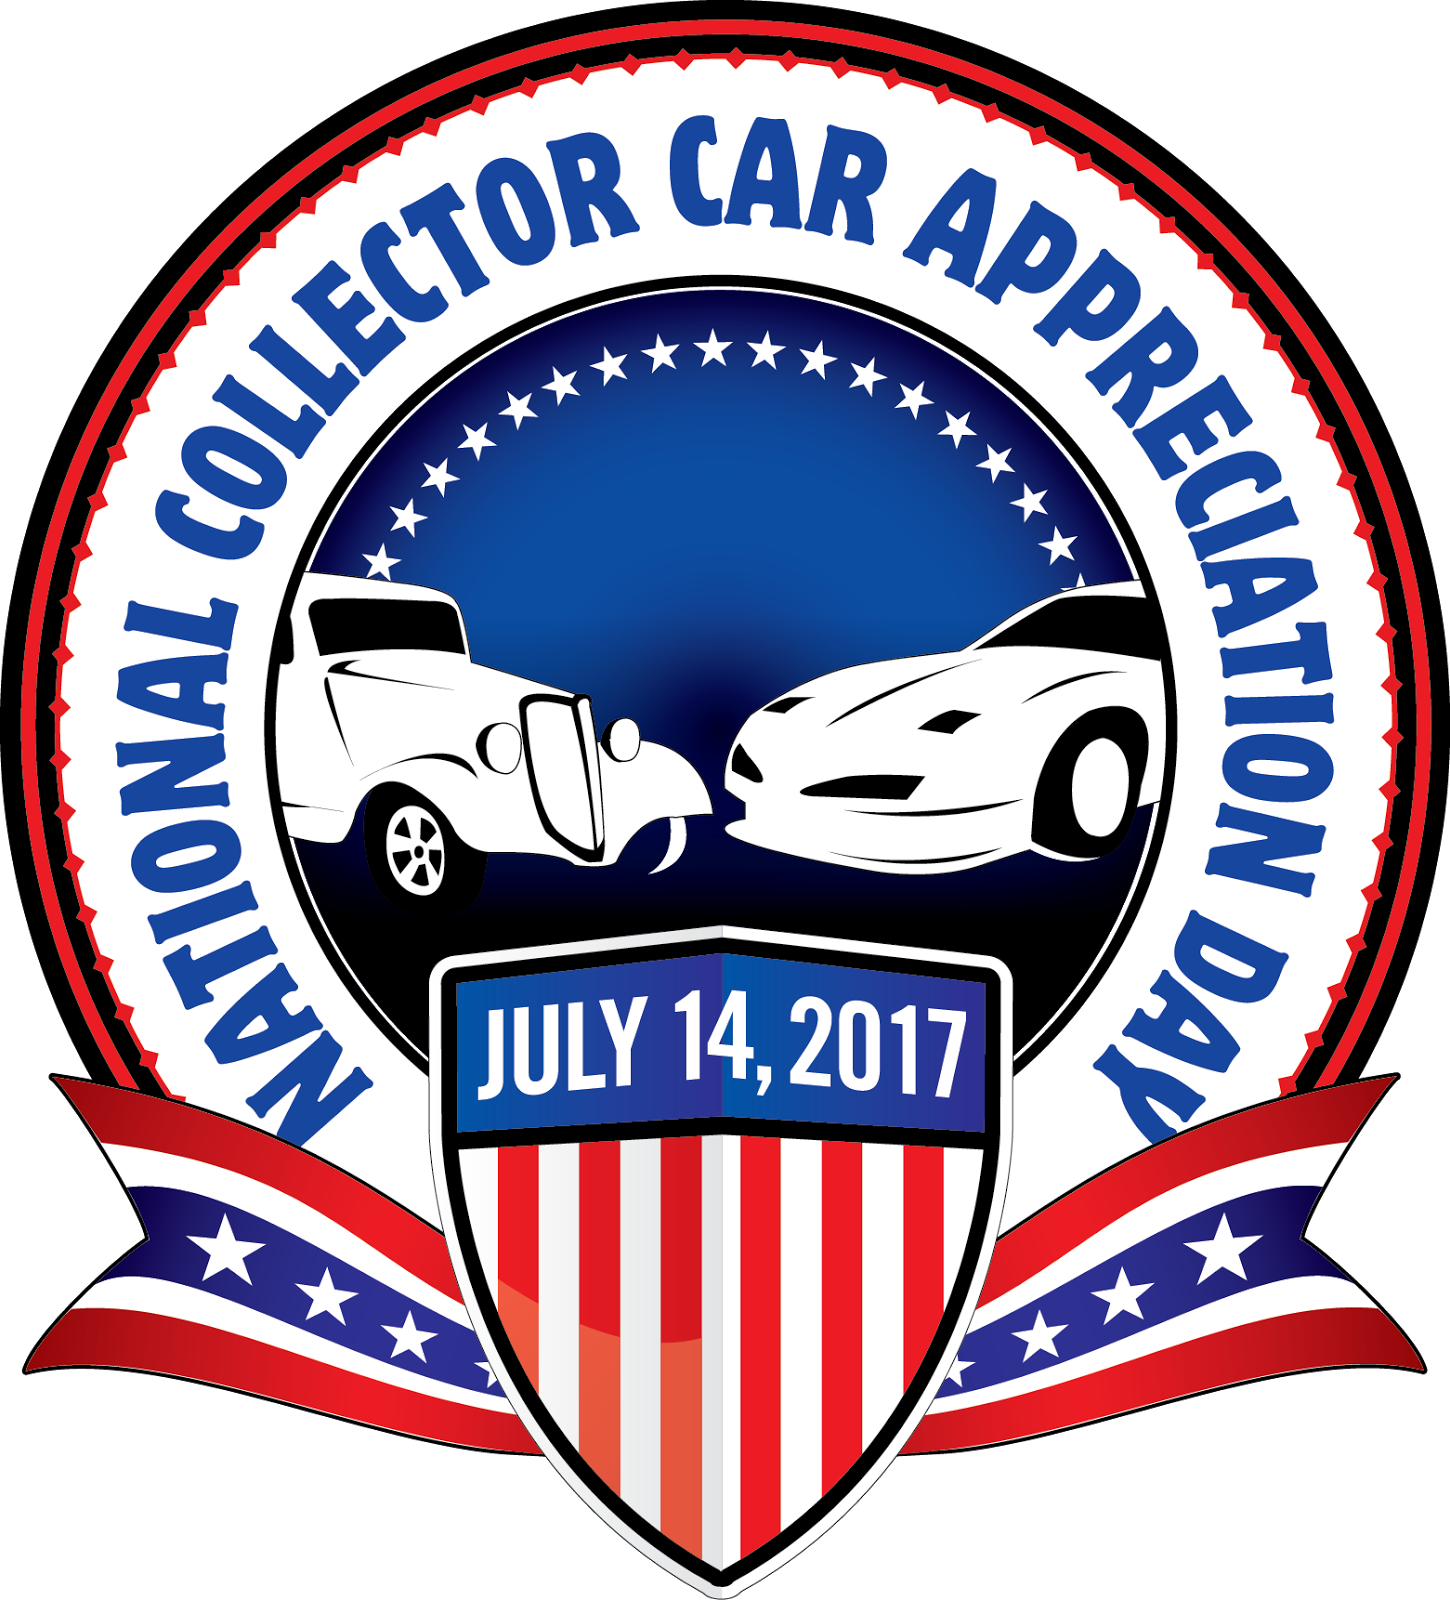 COLLECTOR CAR APPRECIATION DAY JULY 14, 2017